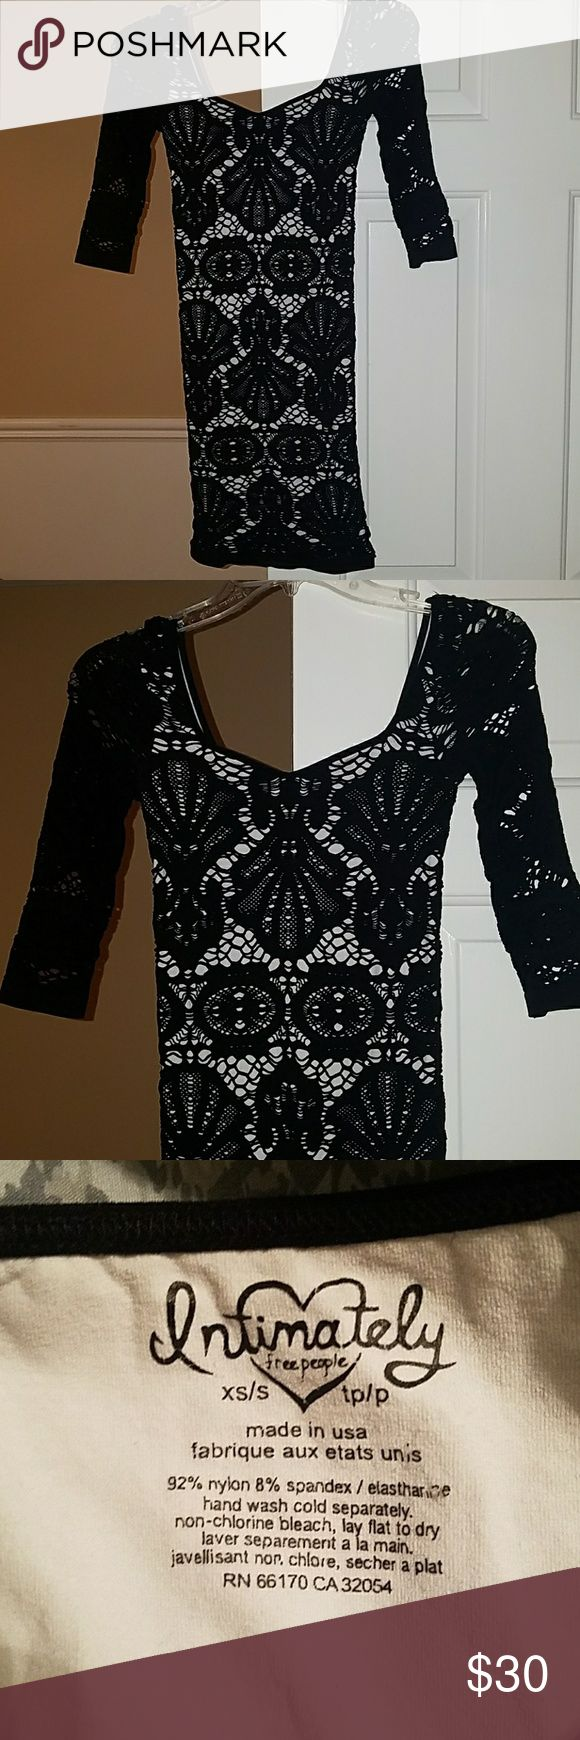 Free People Black and White Crochet Bodycon Dress Size XS/S Free People Dresses